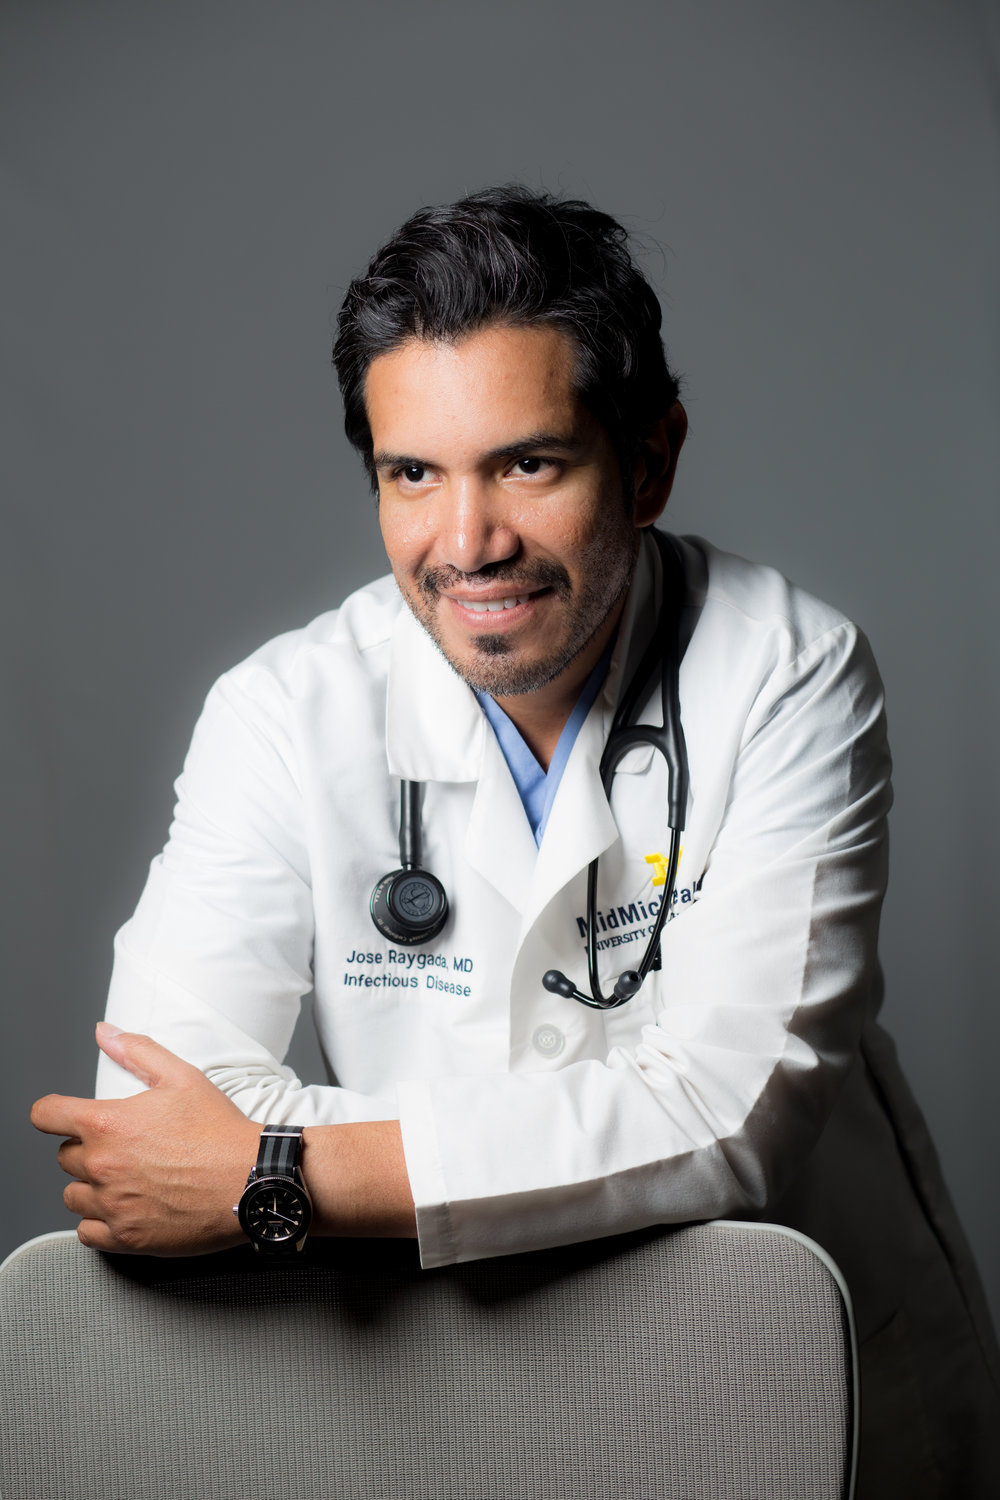 Jose L. Raygada, MD Medical Director, Vascular Medicine and Infectious Disease